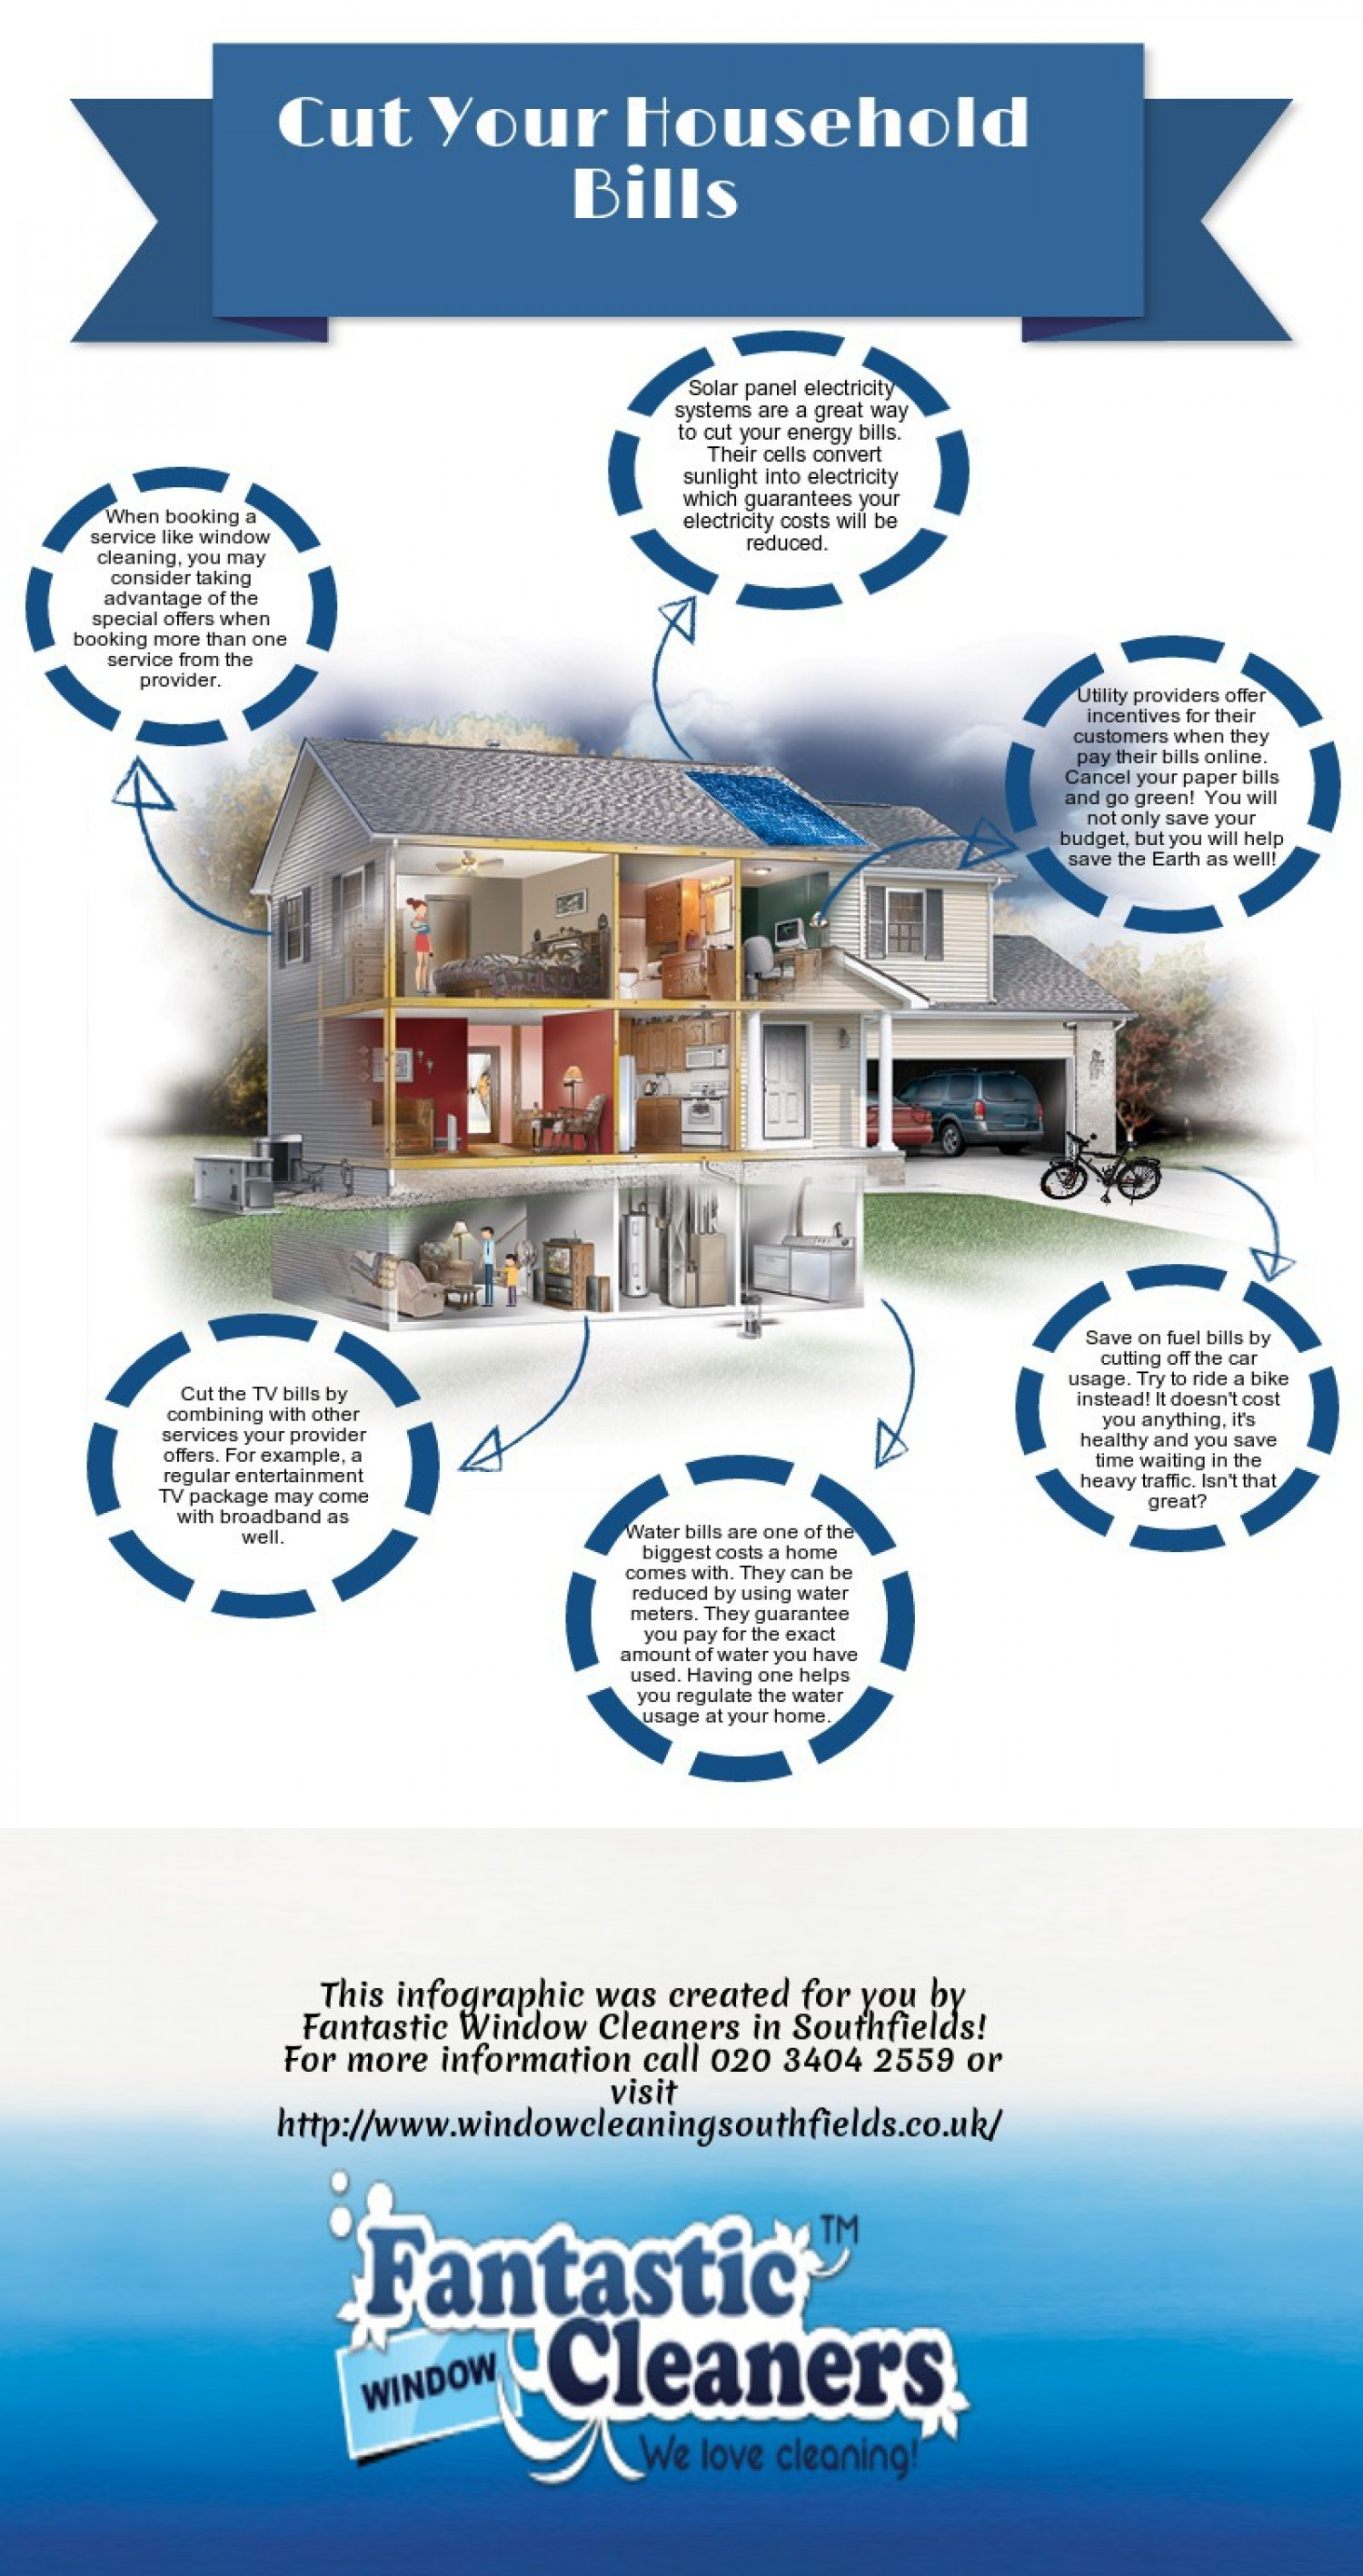 Cut Your Household Bills Infographic